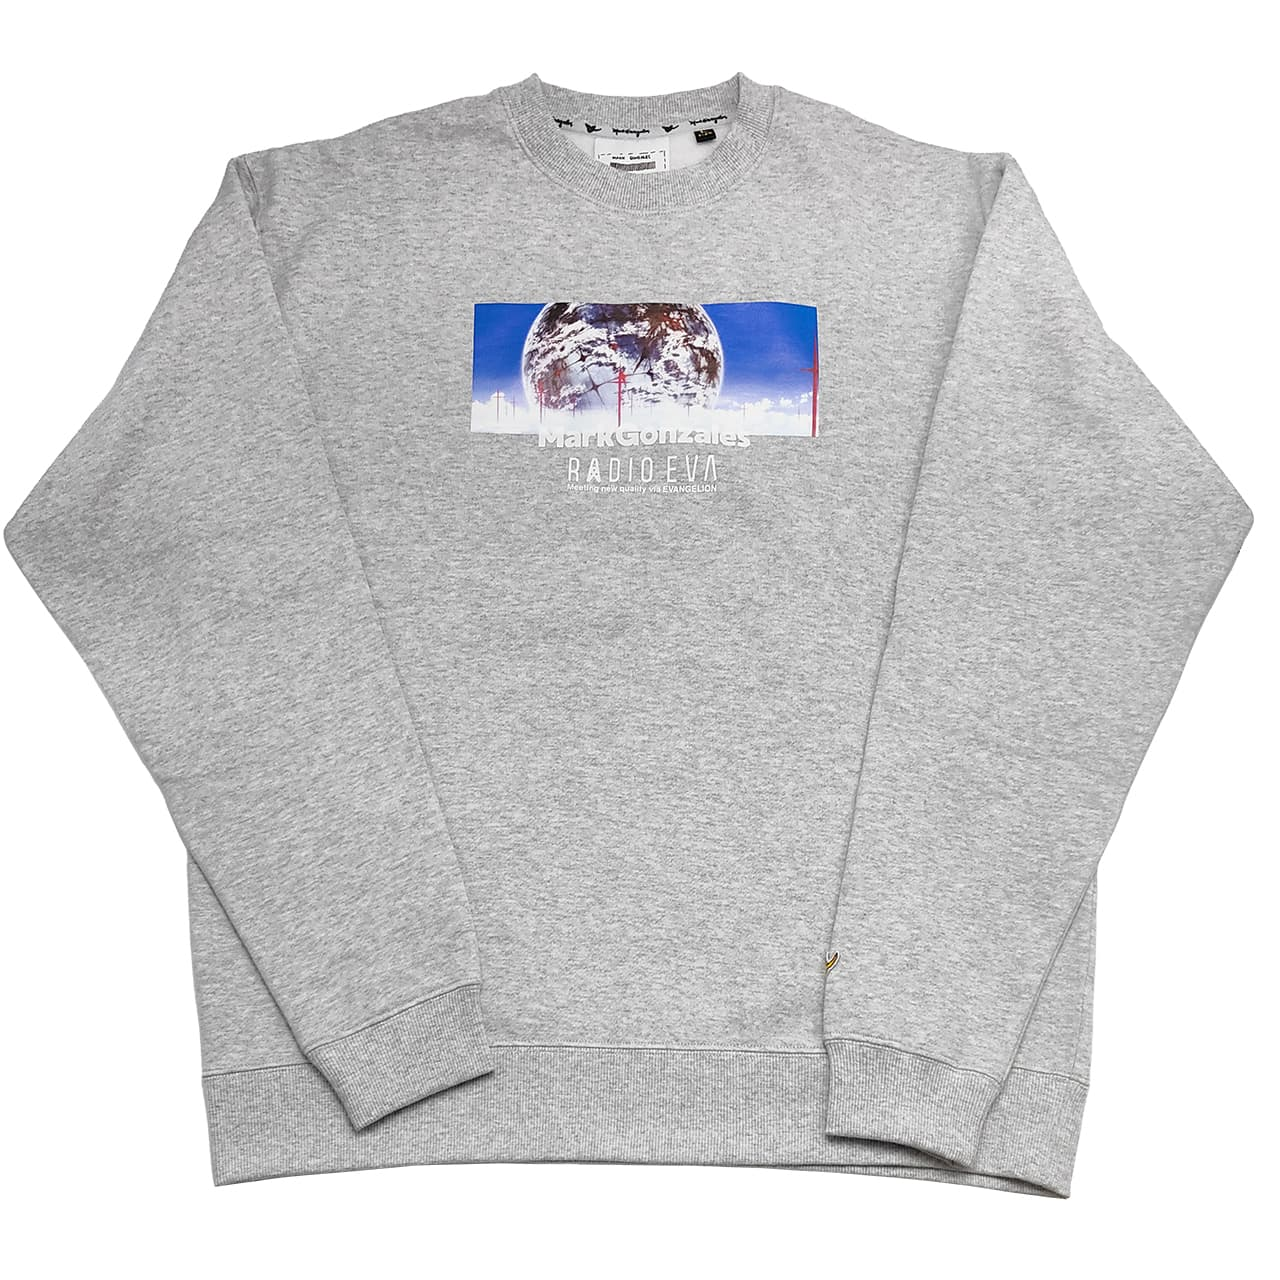 Human Mind Print Sweatshirt by MARK GONZALES (杢GRAY)